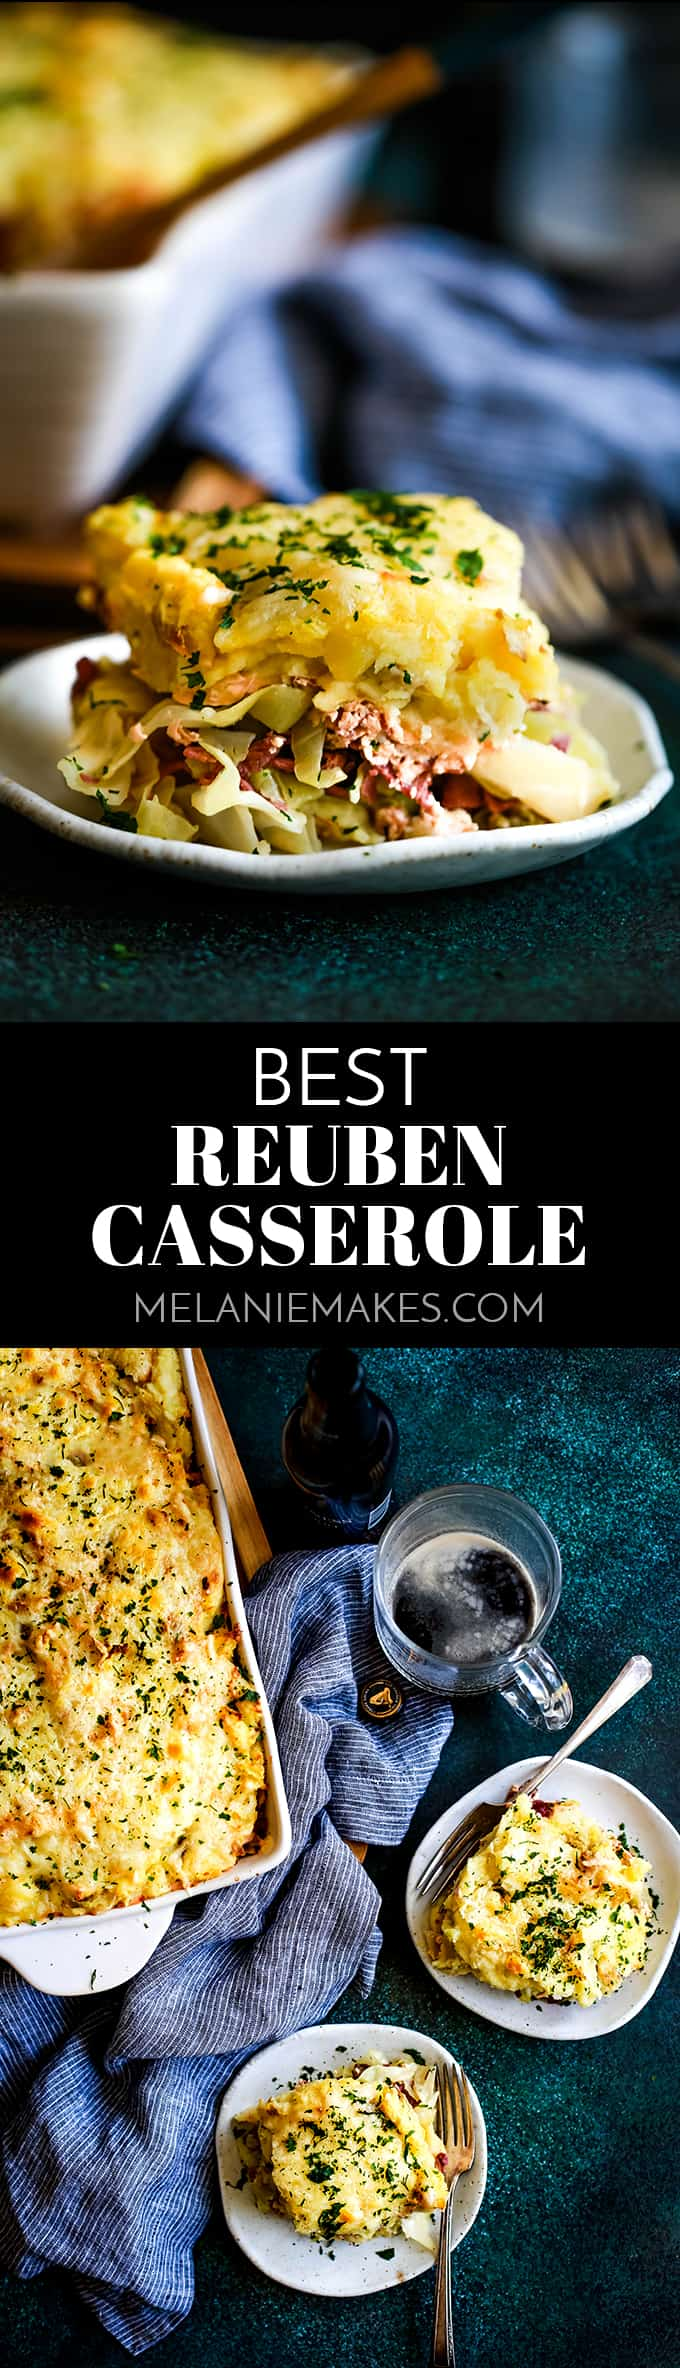 This is without a doubt the Best Reuben Casserole!  Corned beef and cabbage are sandwiched between layers of mashed potatoes speckled with Swiss cheese. #reuben #casserole #comfortfood #stpatricksday #irish #cornedbeef #mashedpotatoes #cabbage